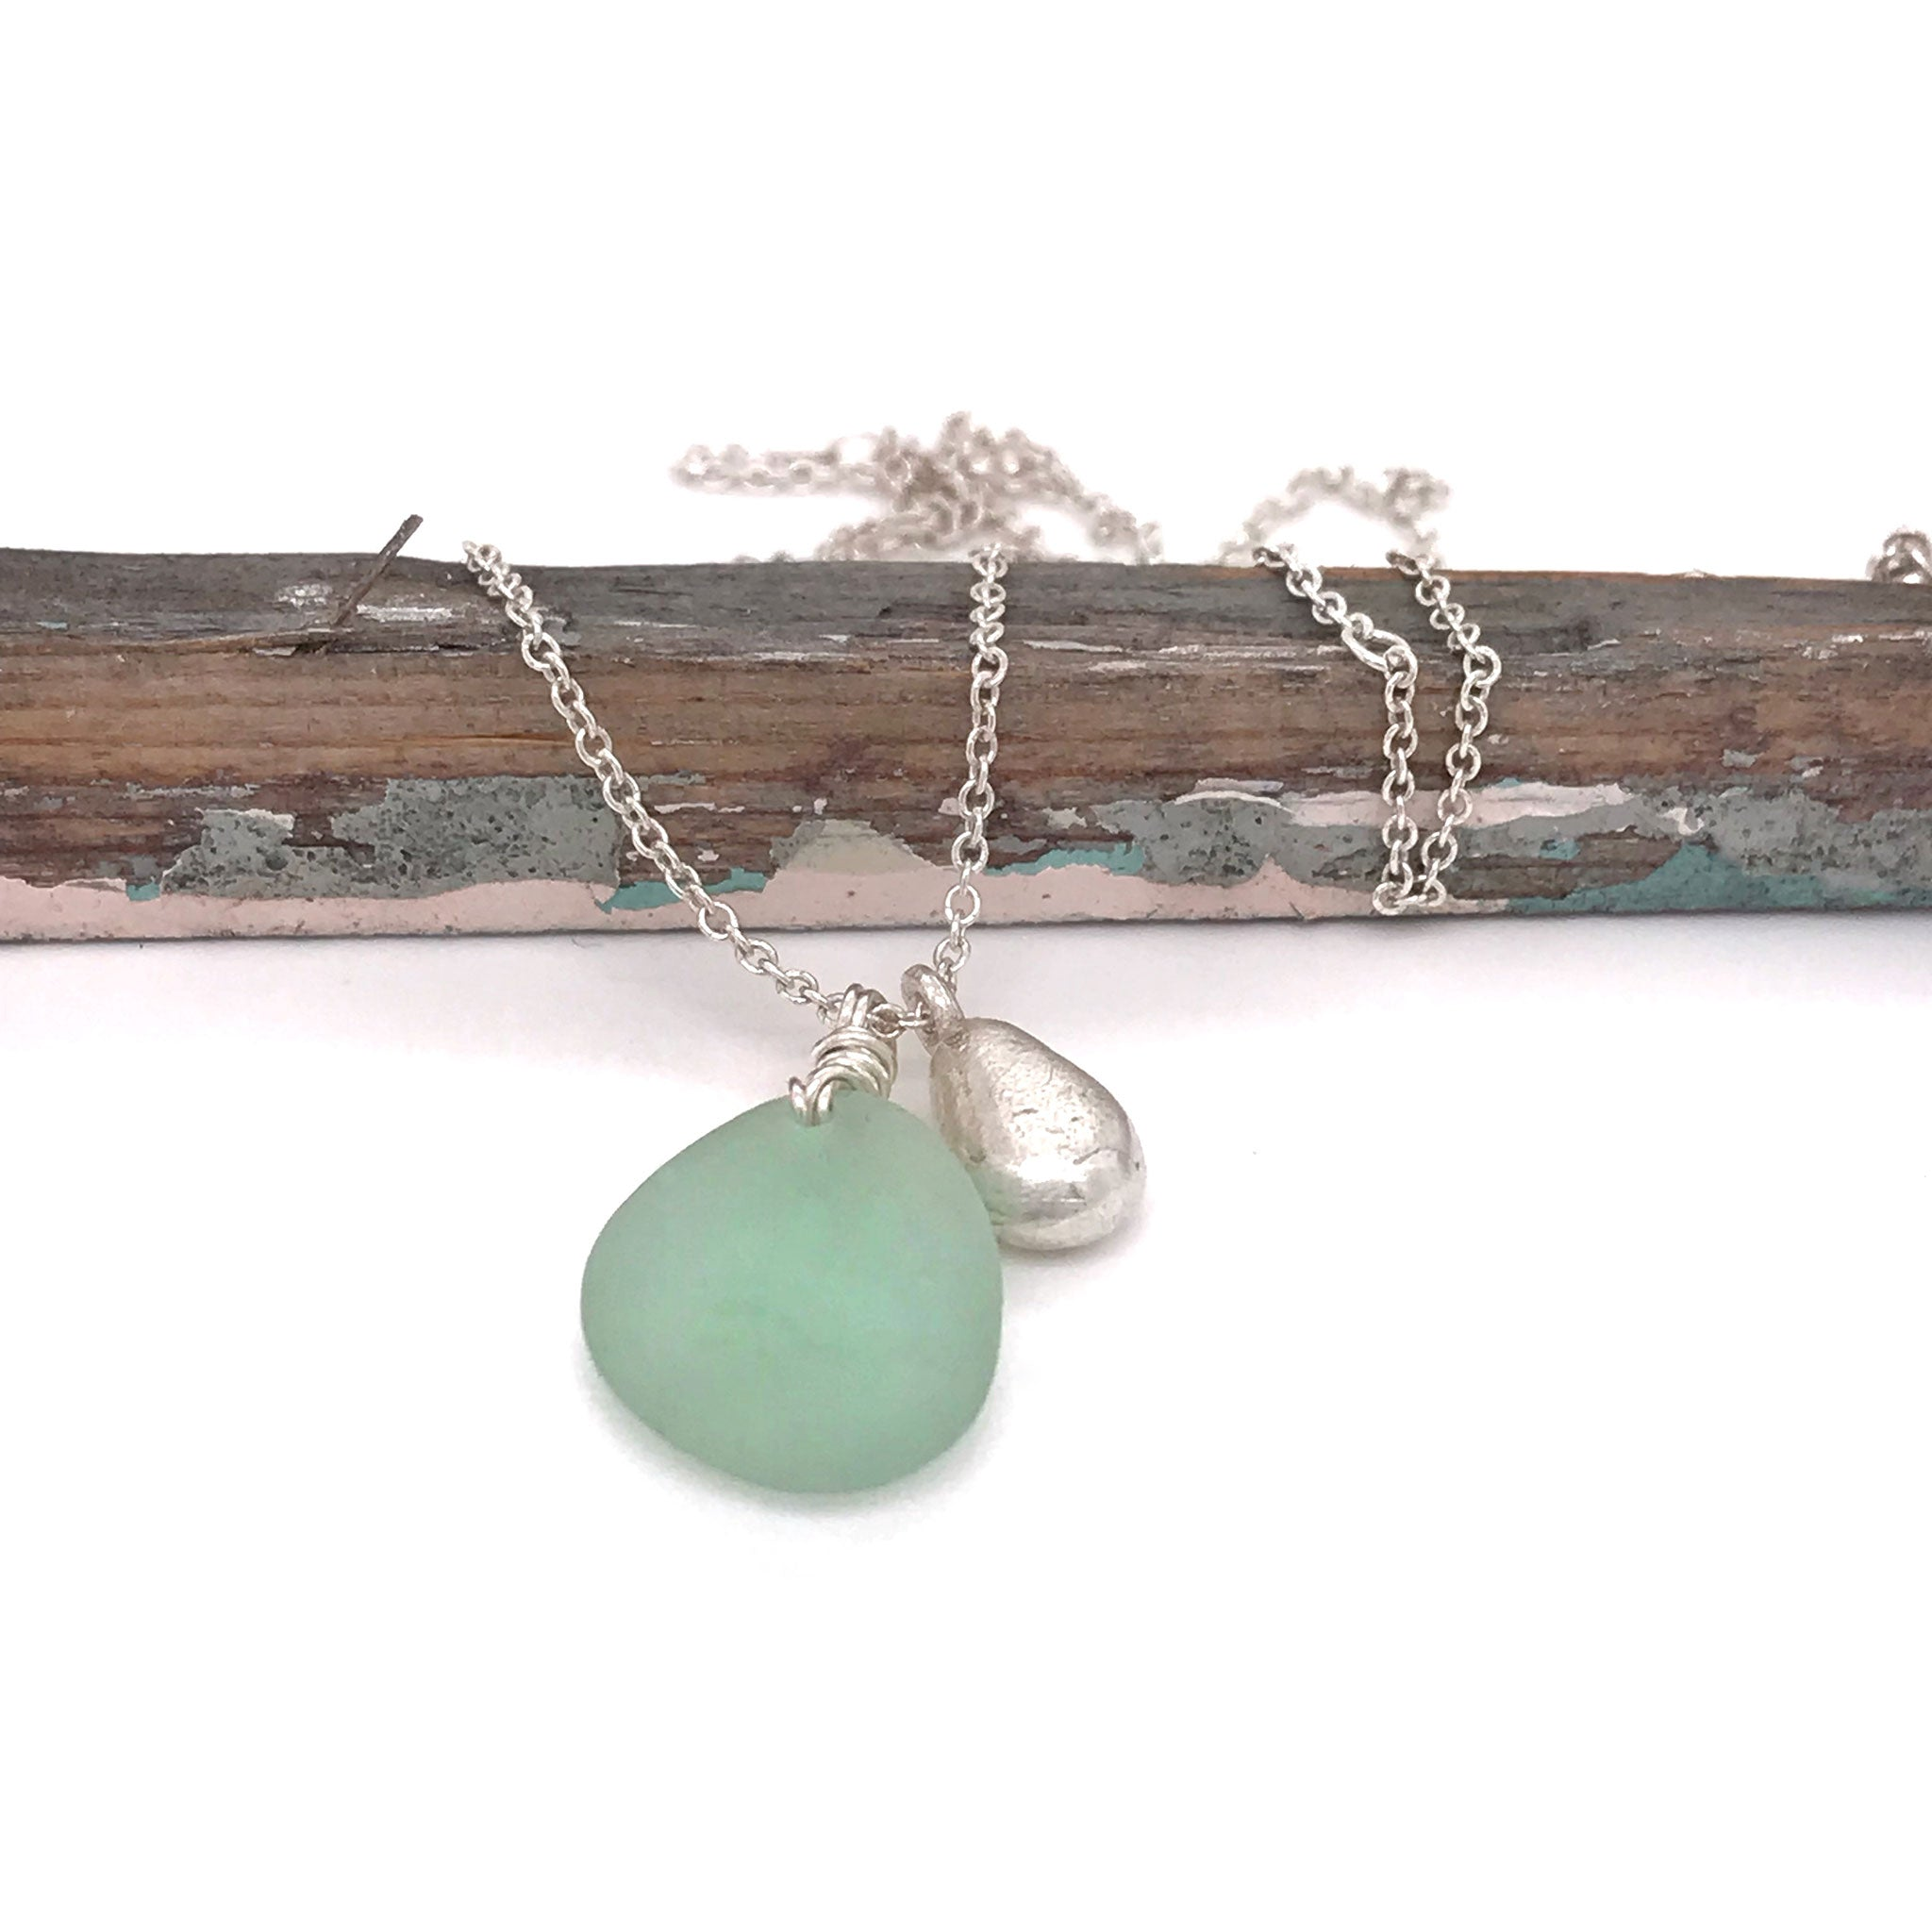 Seafoam Seaglass Necklace with Solid Silver Teardrop Charm - kriket-broadhurst jewelry